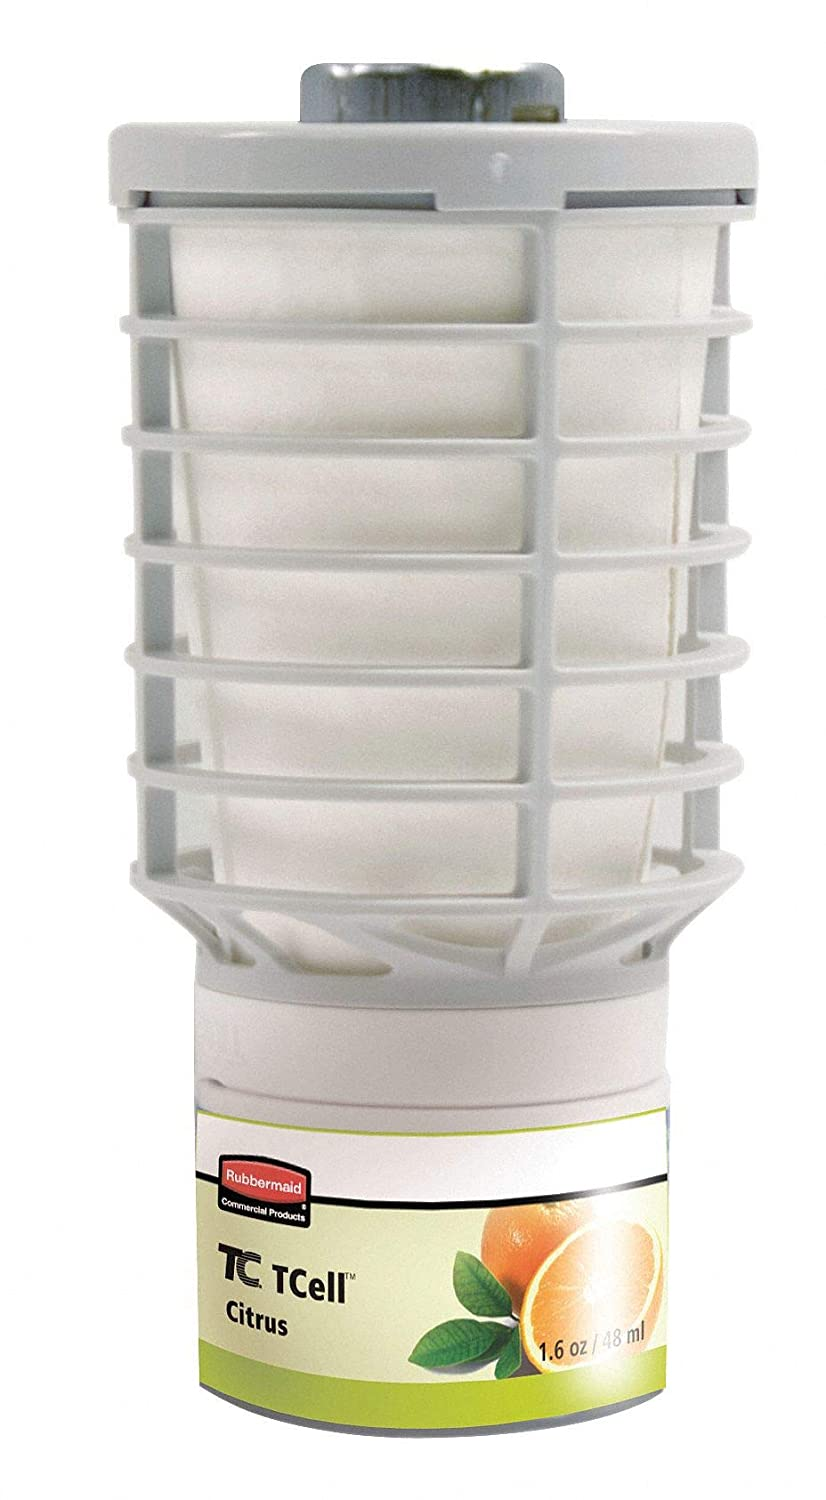 Rubbermaid Commercial FG402113 TCell Air Freshener Refill, Citrus